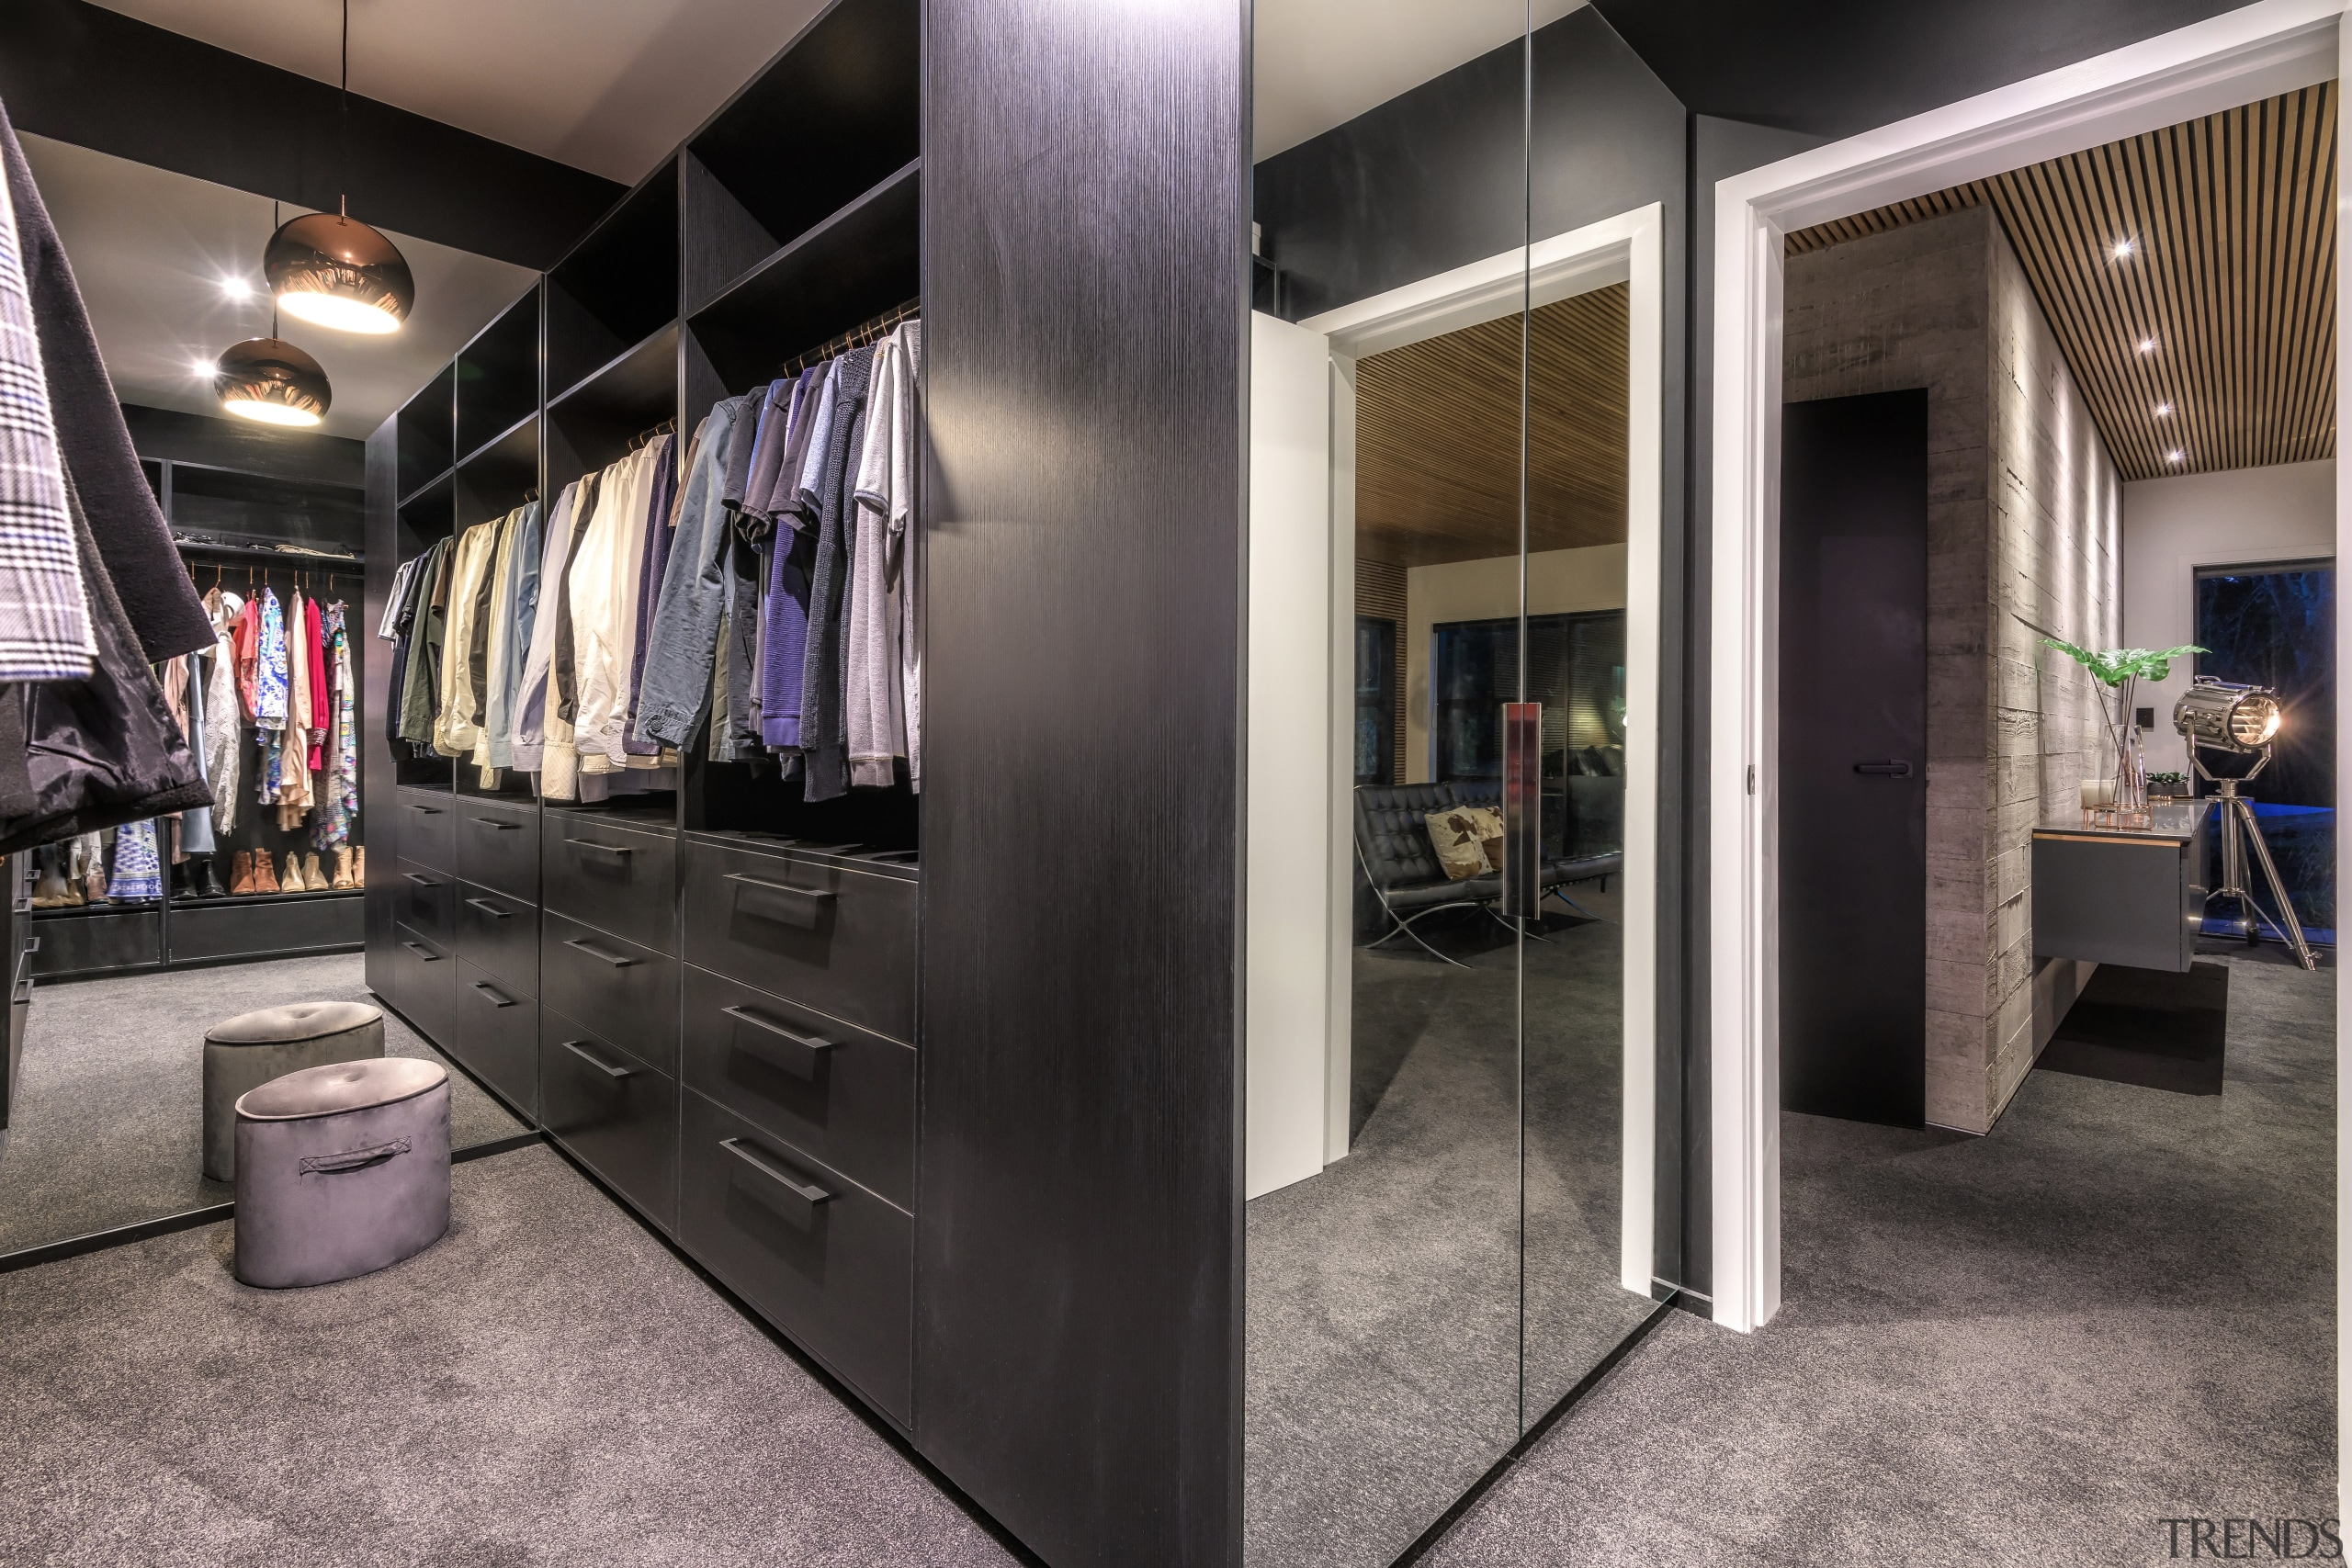 Full height mirrors help create a sense of interior design, home, house, master suite, closet, cabinetry, Kirsty Davis, dressing room